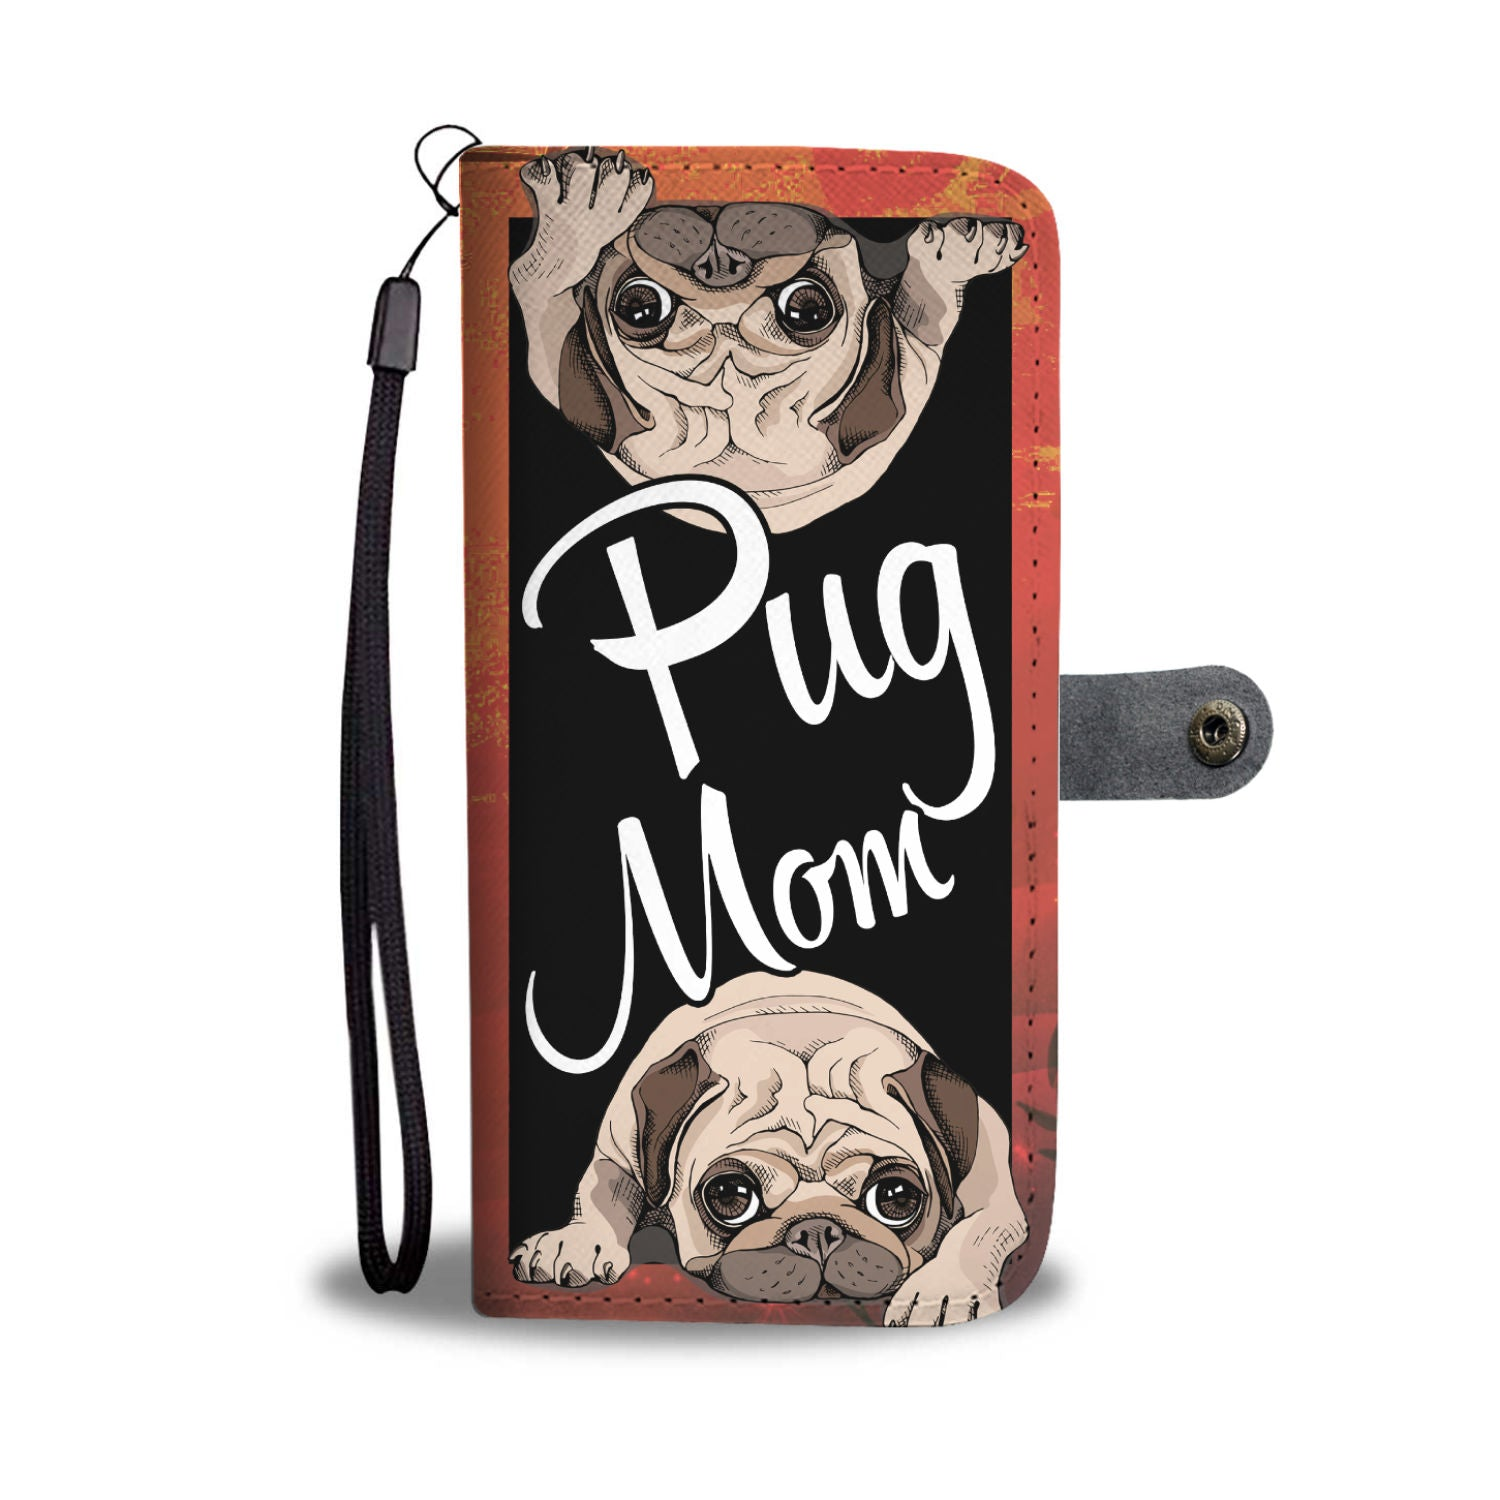 Pug mom Wallet case